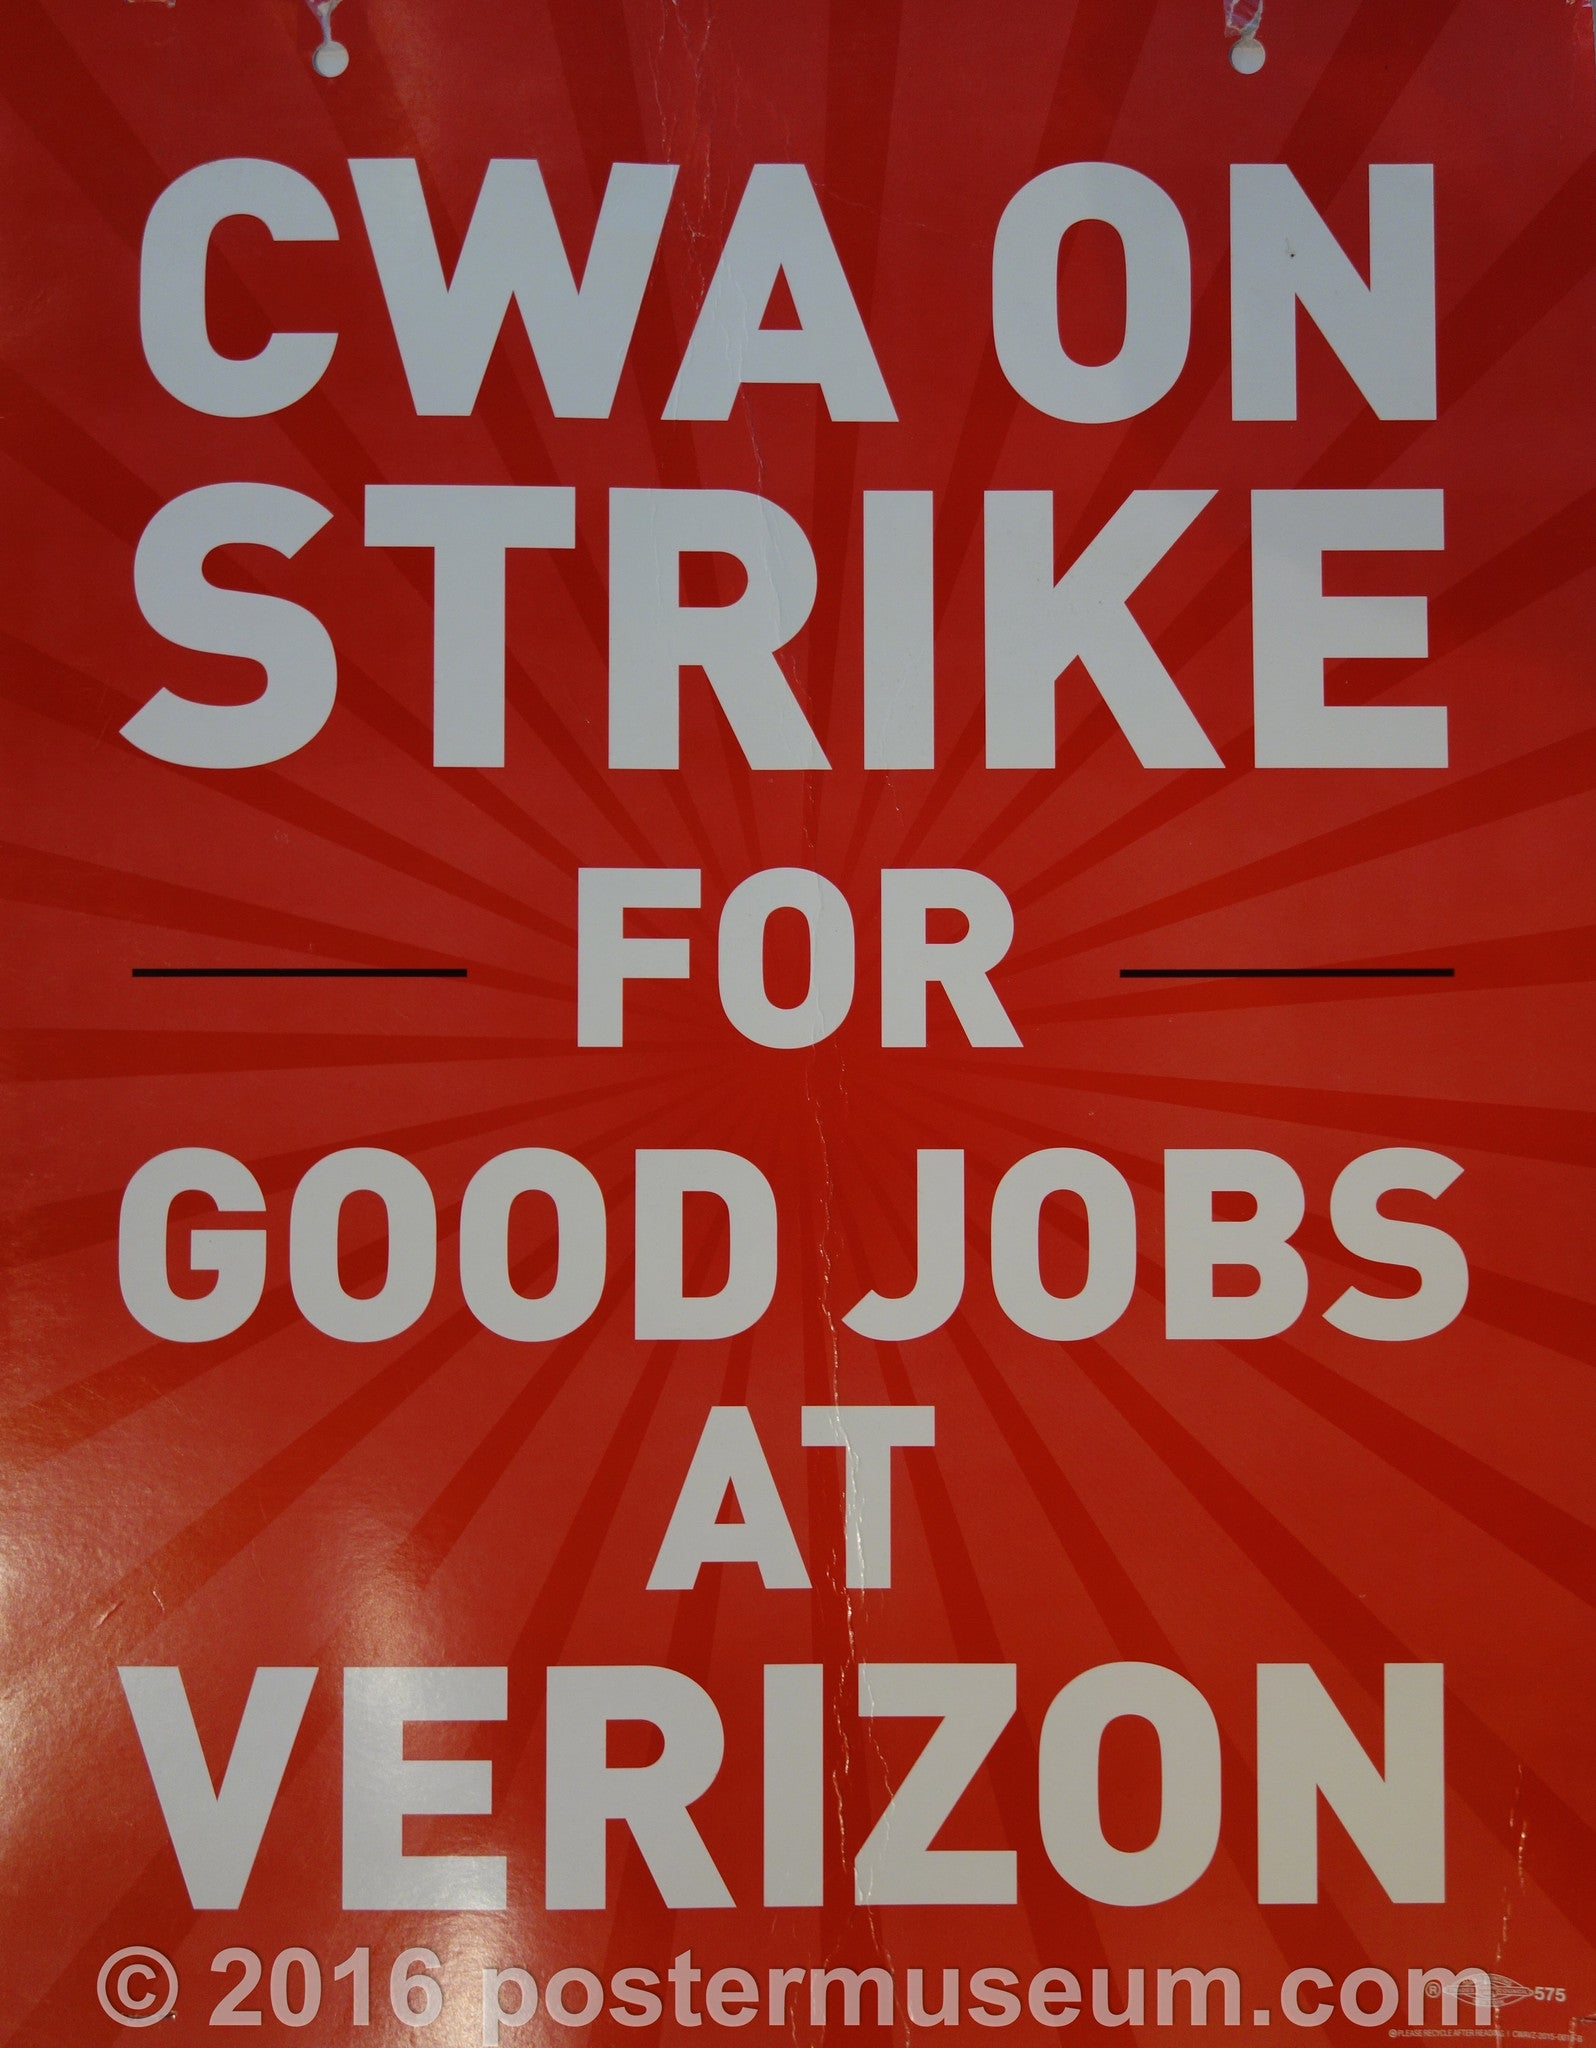 CWA ON STRIKE